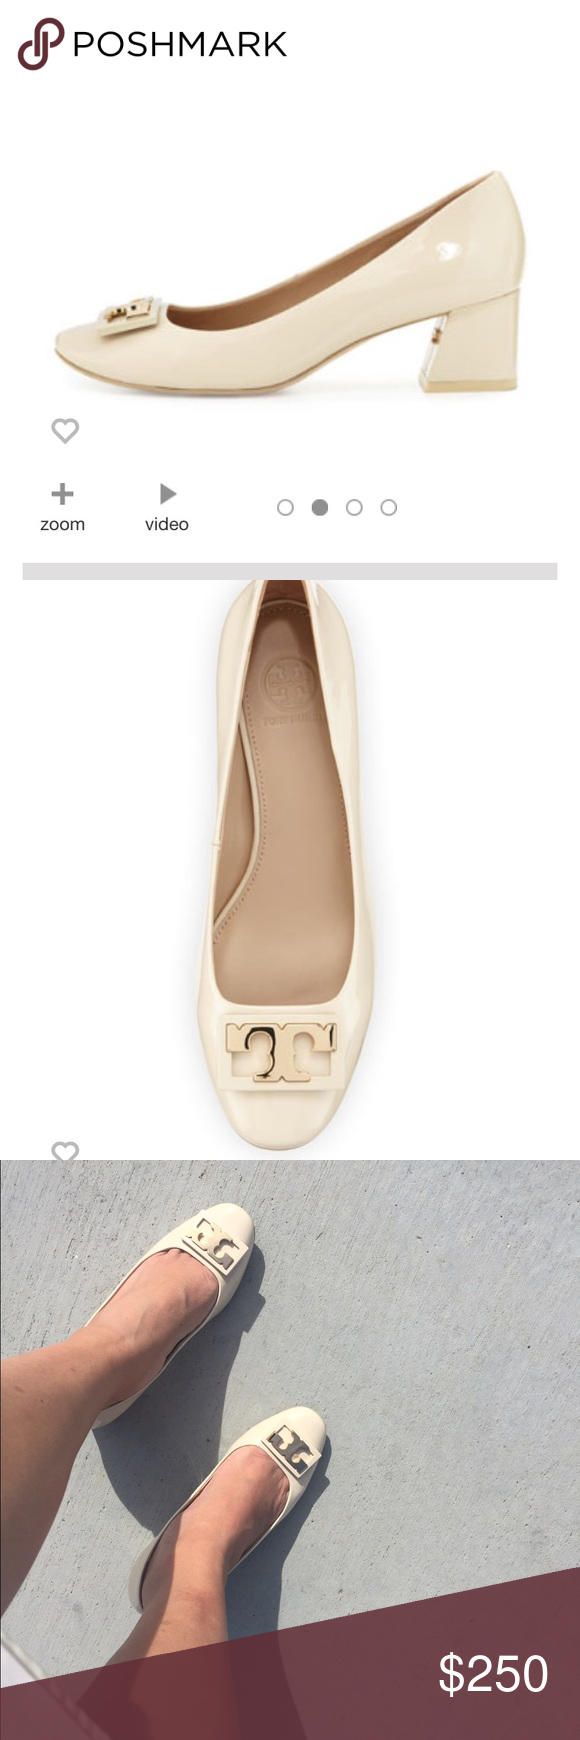 Tory Burch Beige shoes Used twice.  Purchased at Neiman Marcus. Selling only since it's a bit tight. perfect condition. Patent and beige color.  Mid heel so it's perfect for everyday wear. Tory Burch Shoes Heels